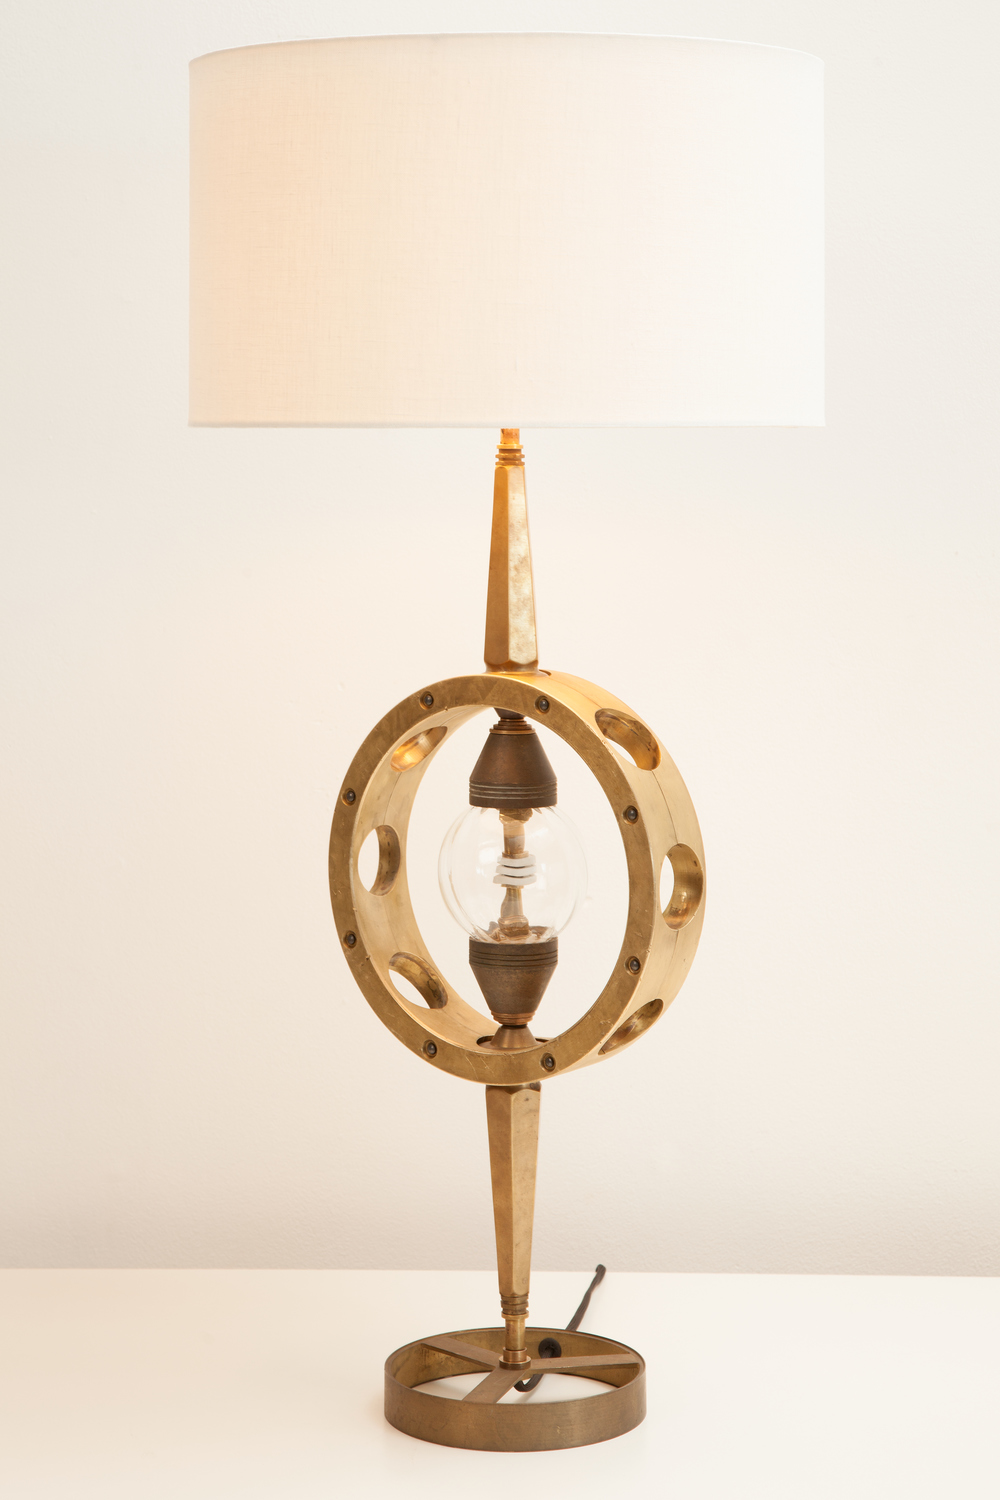 Lamp - 242 Brass resized.jpg